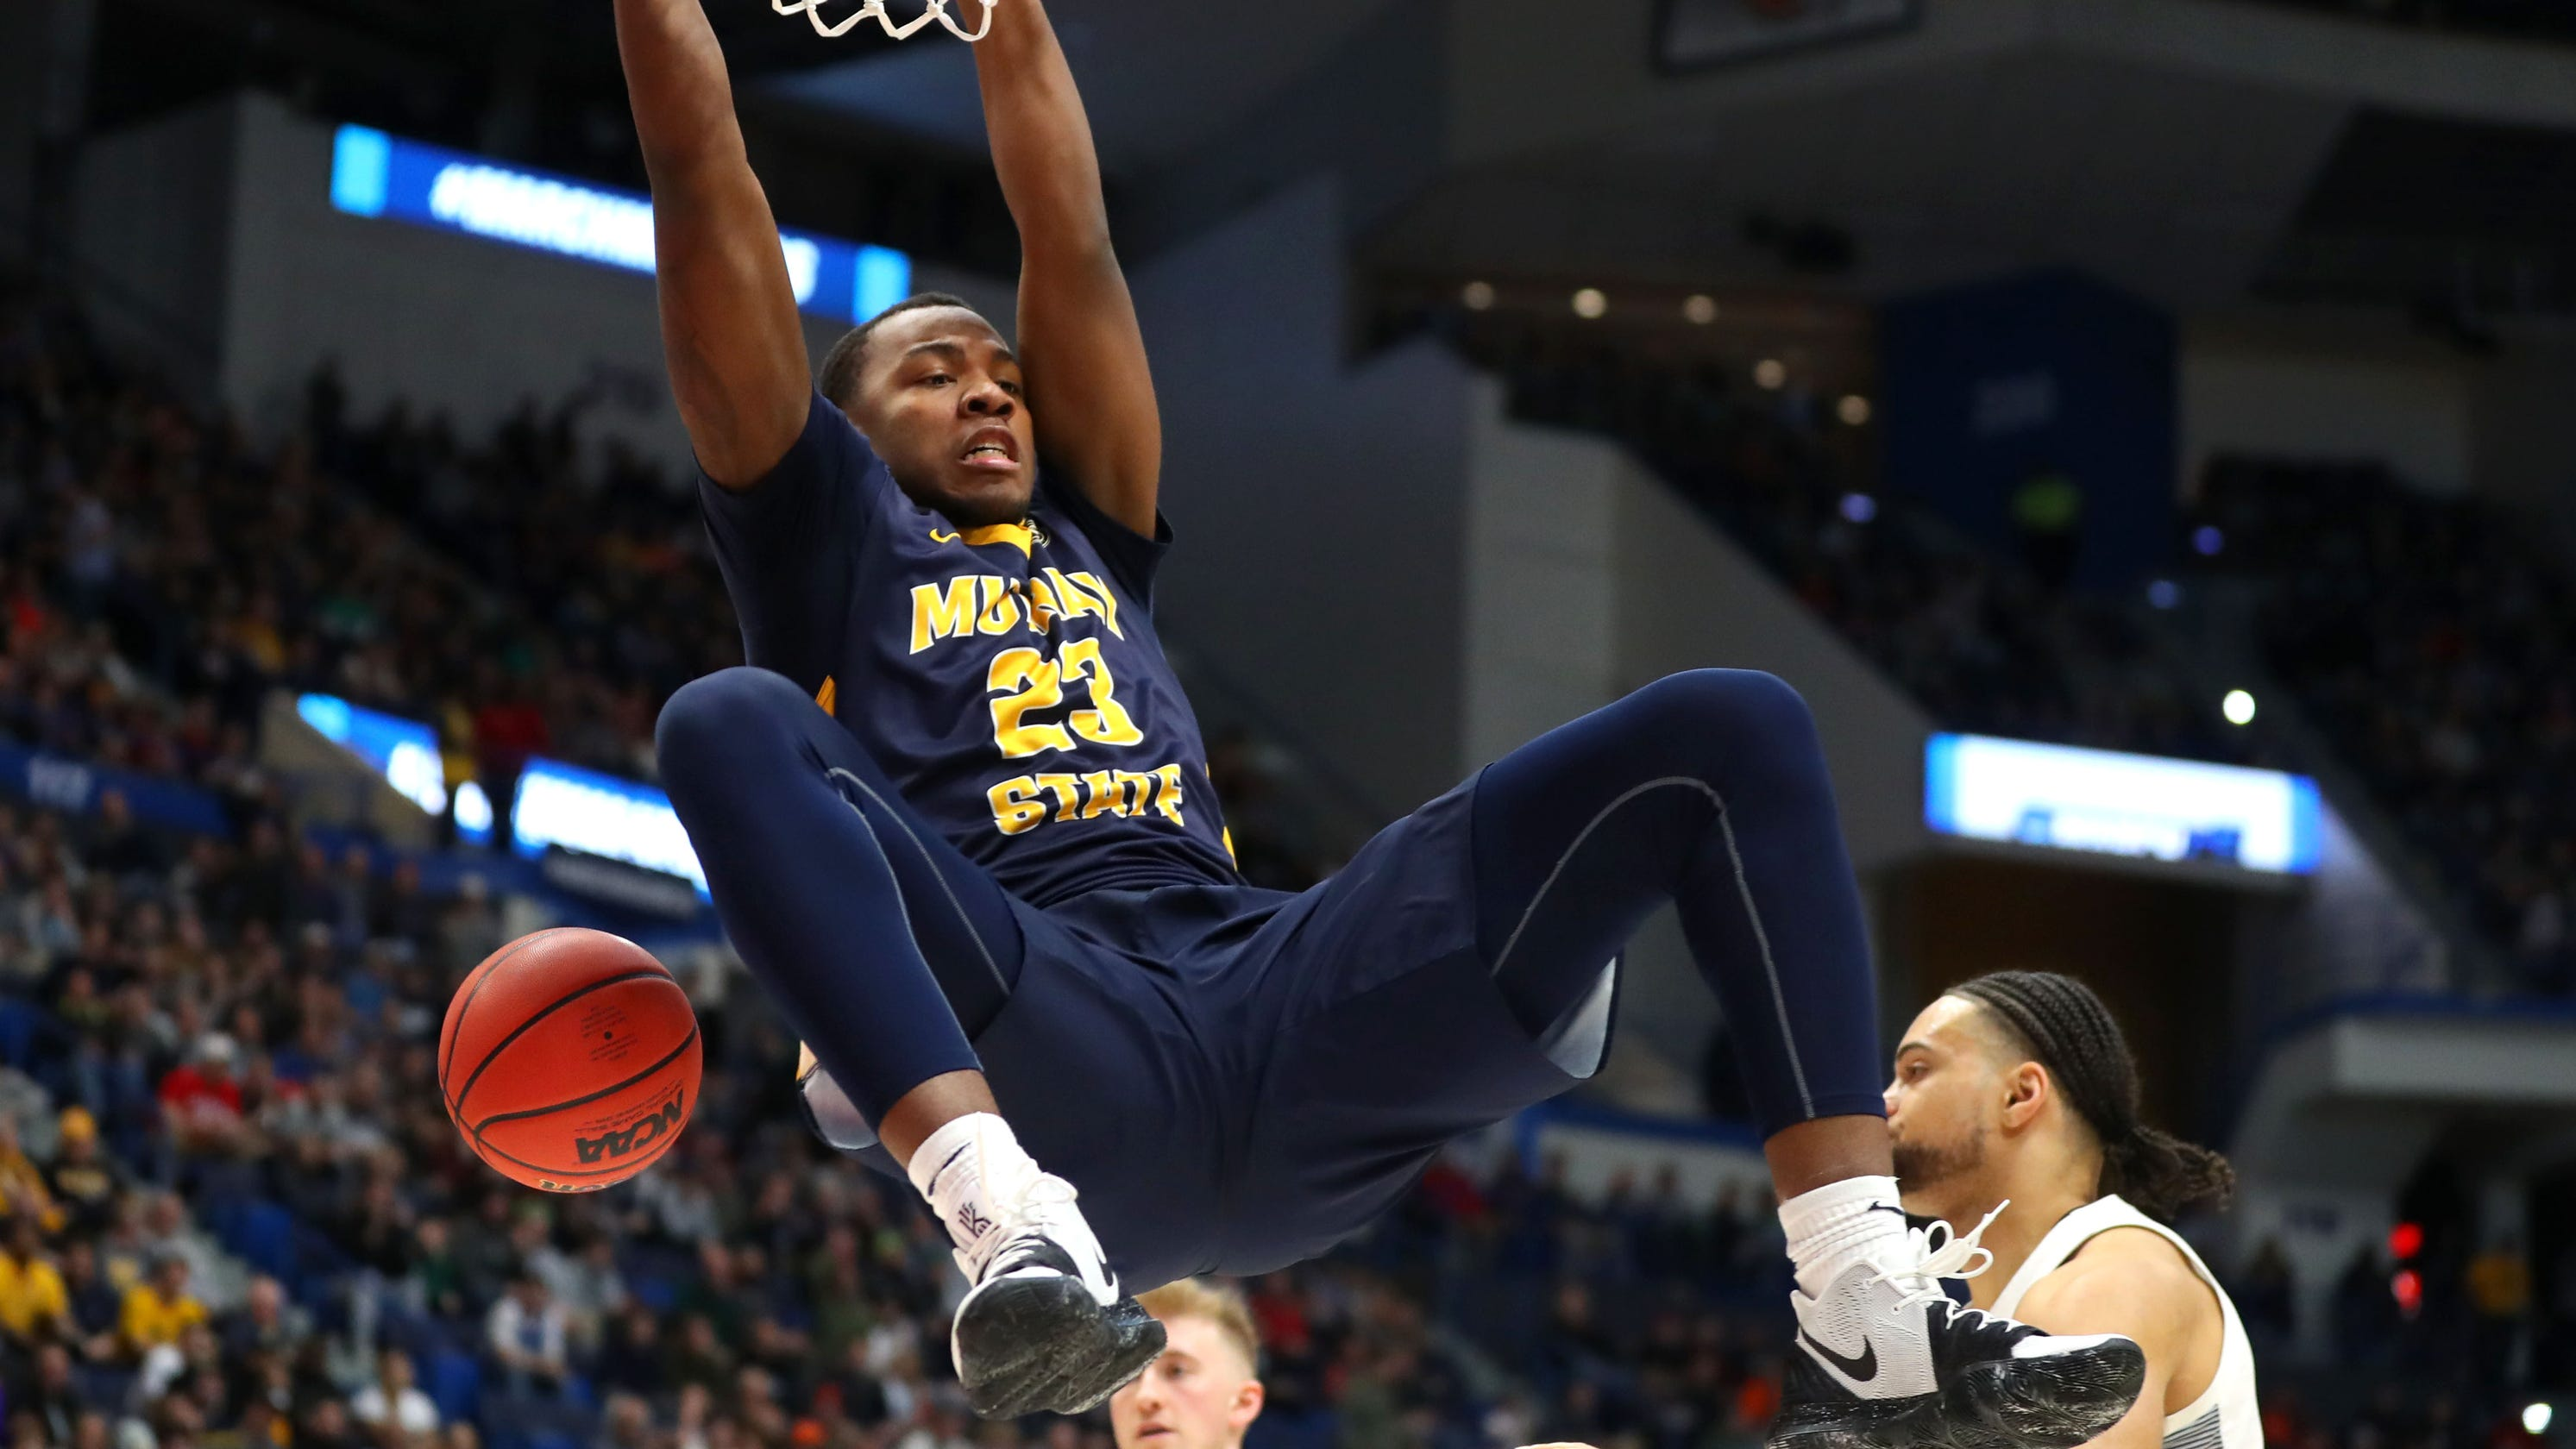 Murray State upsets Marquette and more NCAA tournament action in March Madness Day 1